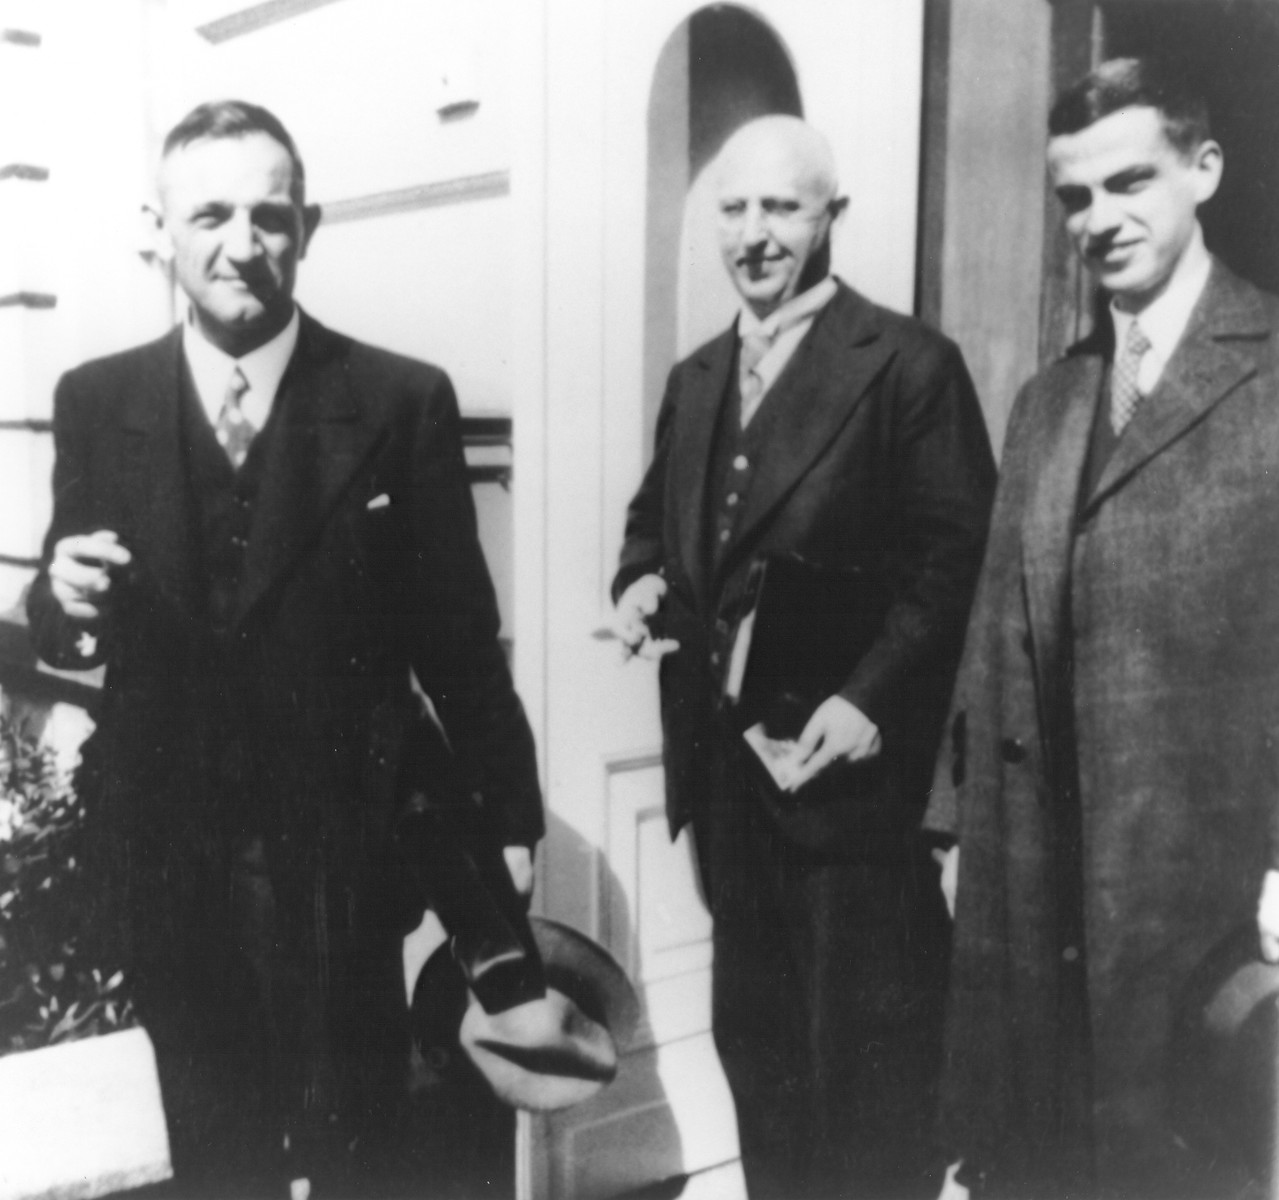 Pastor Martin Niemoeller poses in a doorway with two other clergymen from the German Confessing Church in Berlin during the Third Reich.   On the right is the vicar Franz Hildebrandt.  Ina the middle is Fritz Mueller.